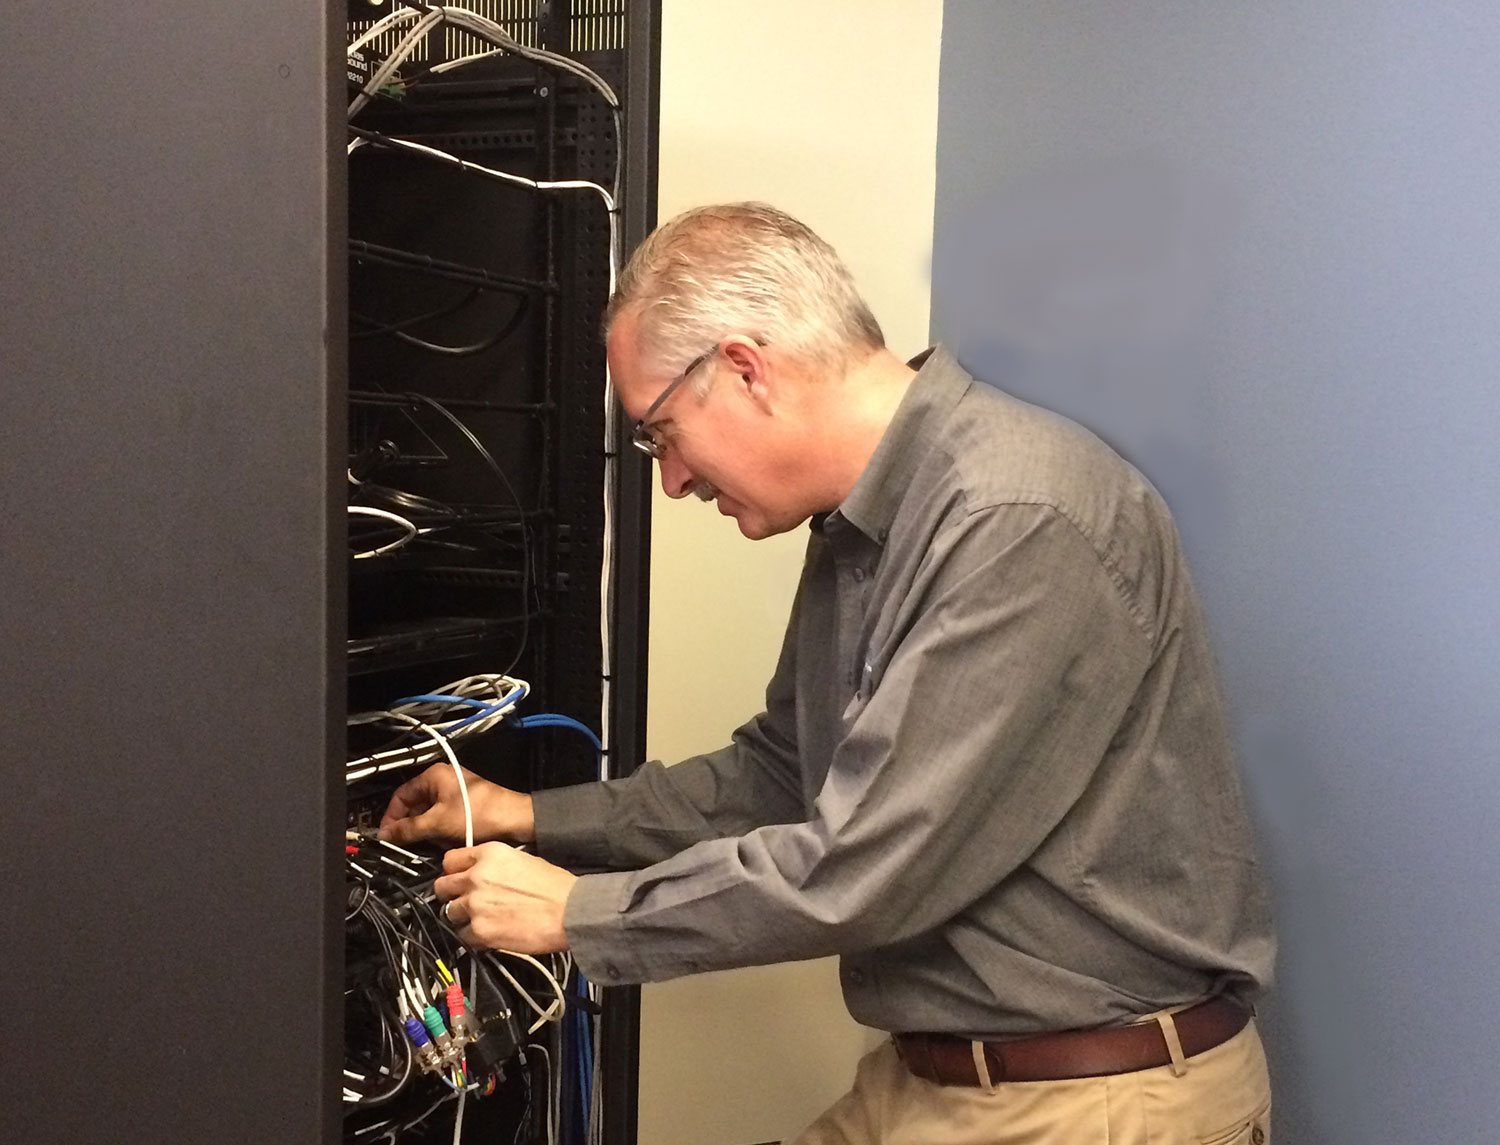 Service Technician working on an audio visual equipment rack.